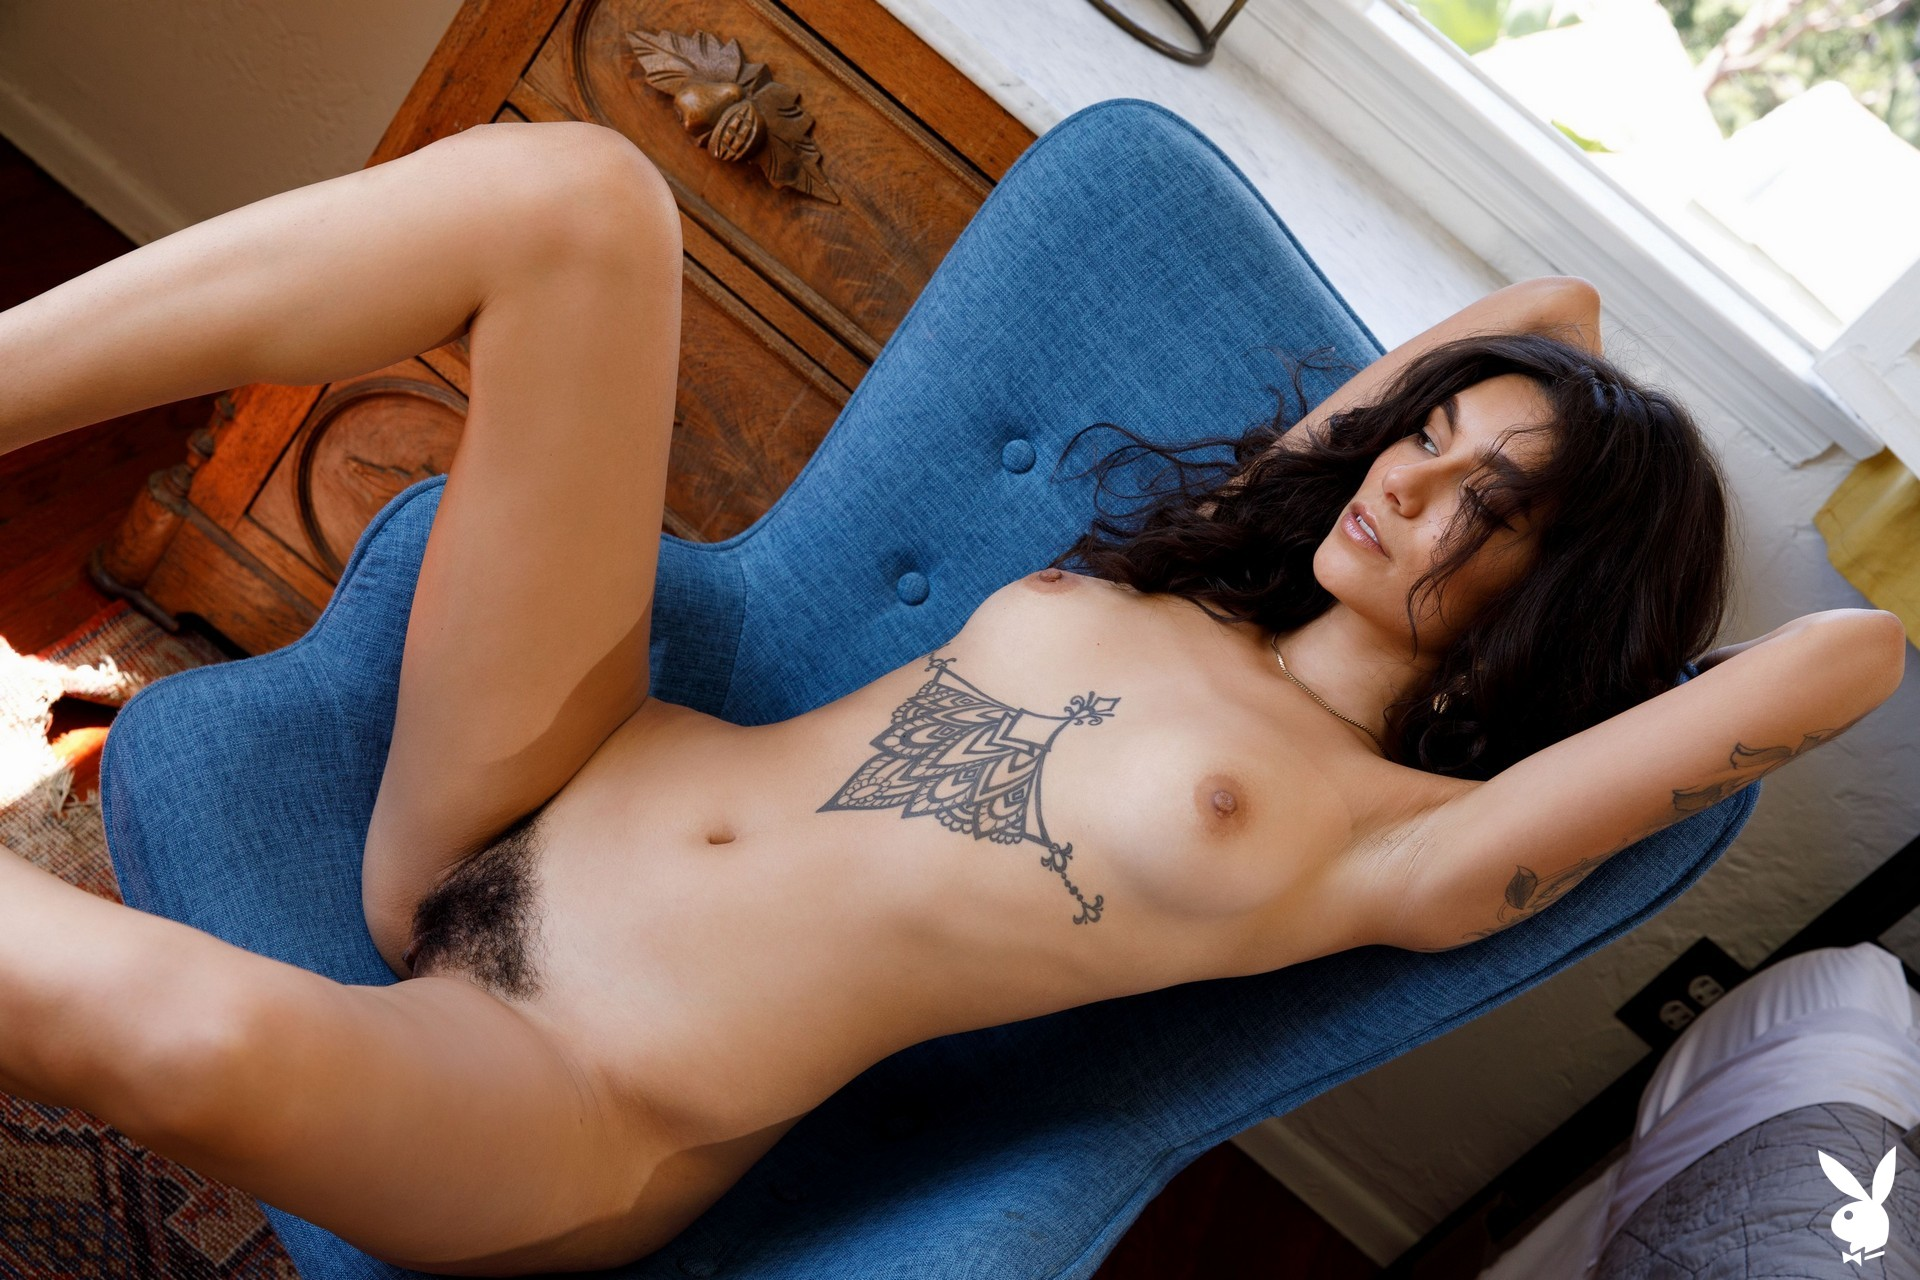 Hades In Genuine Attraction Playboy Plus (24)